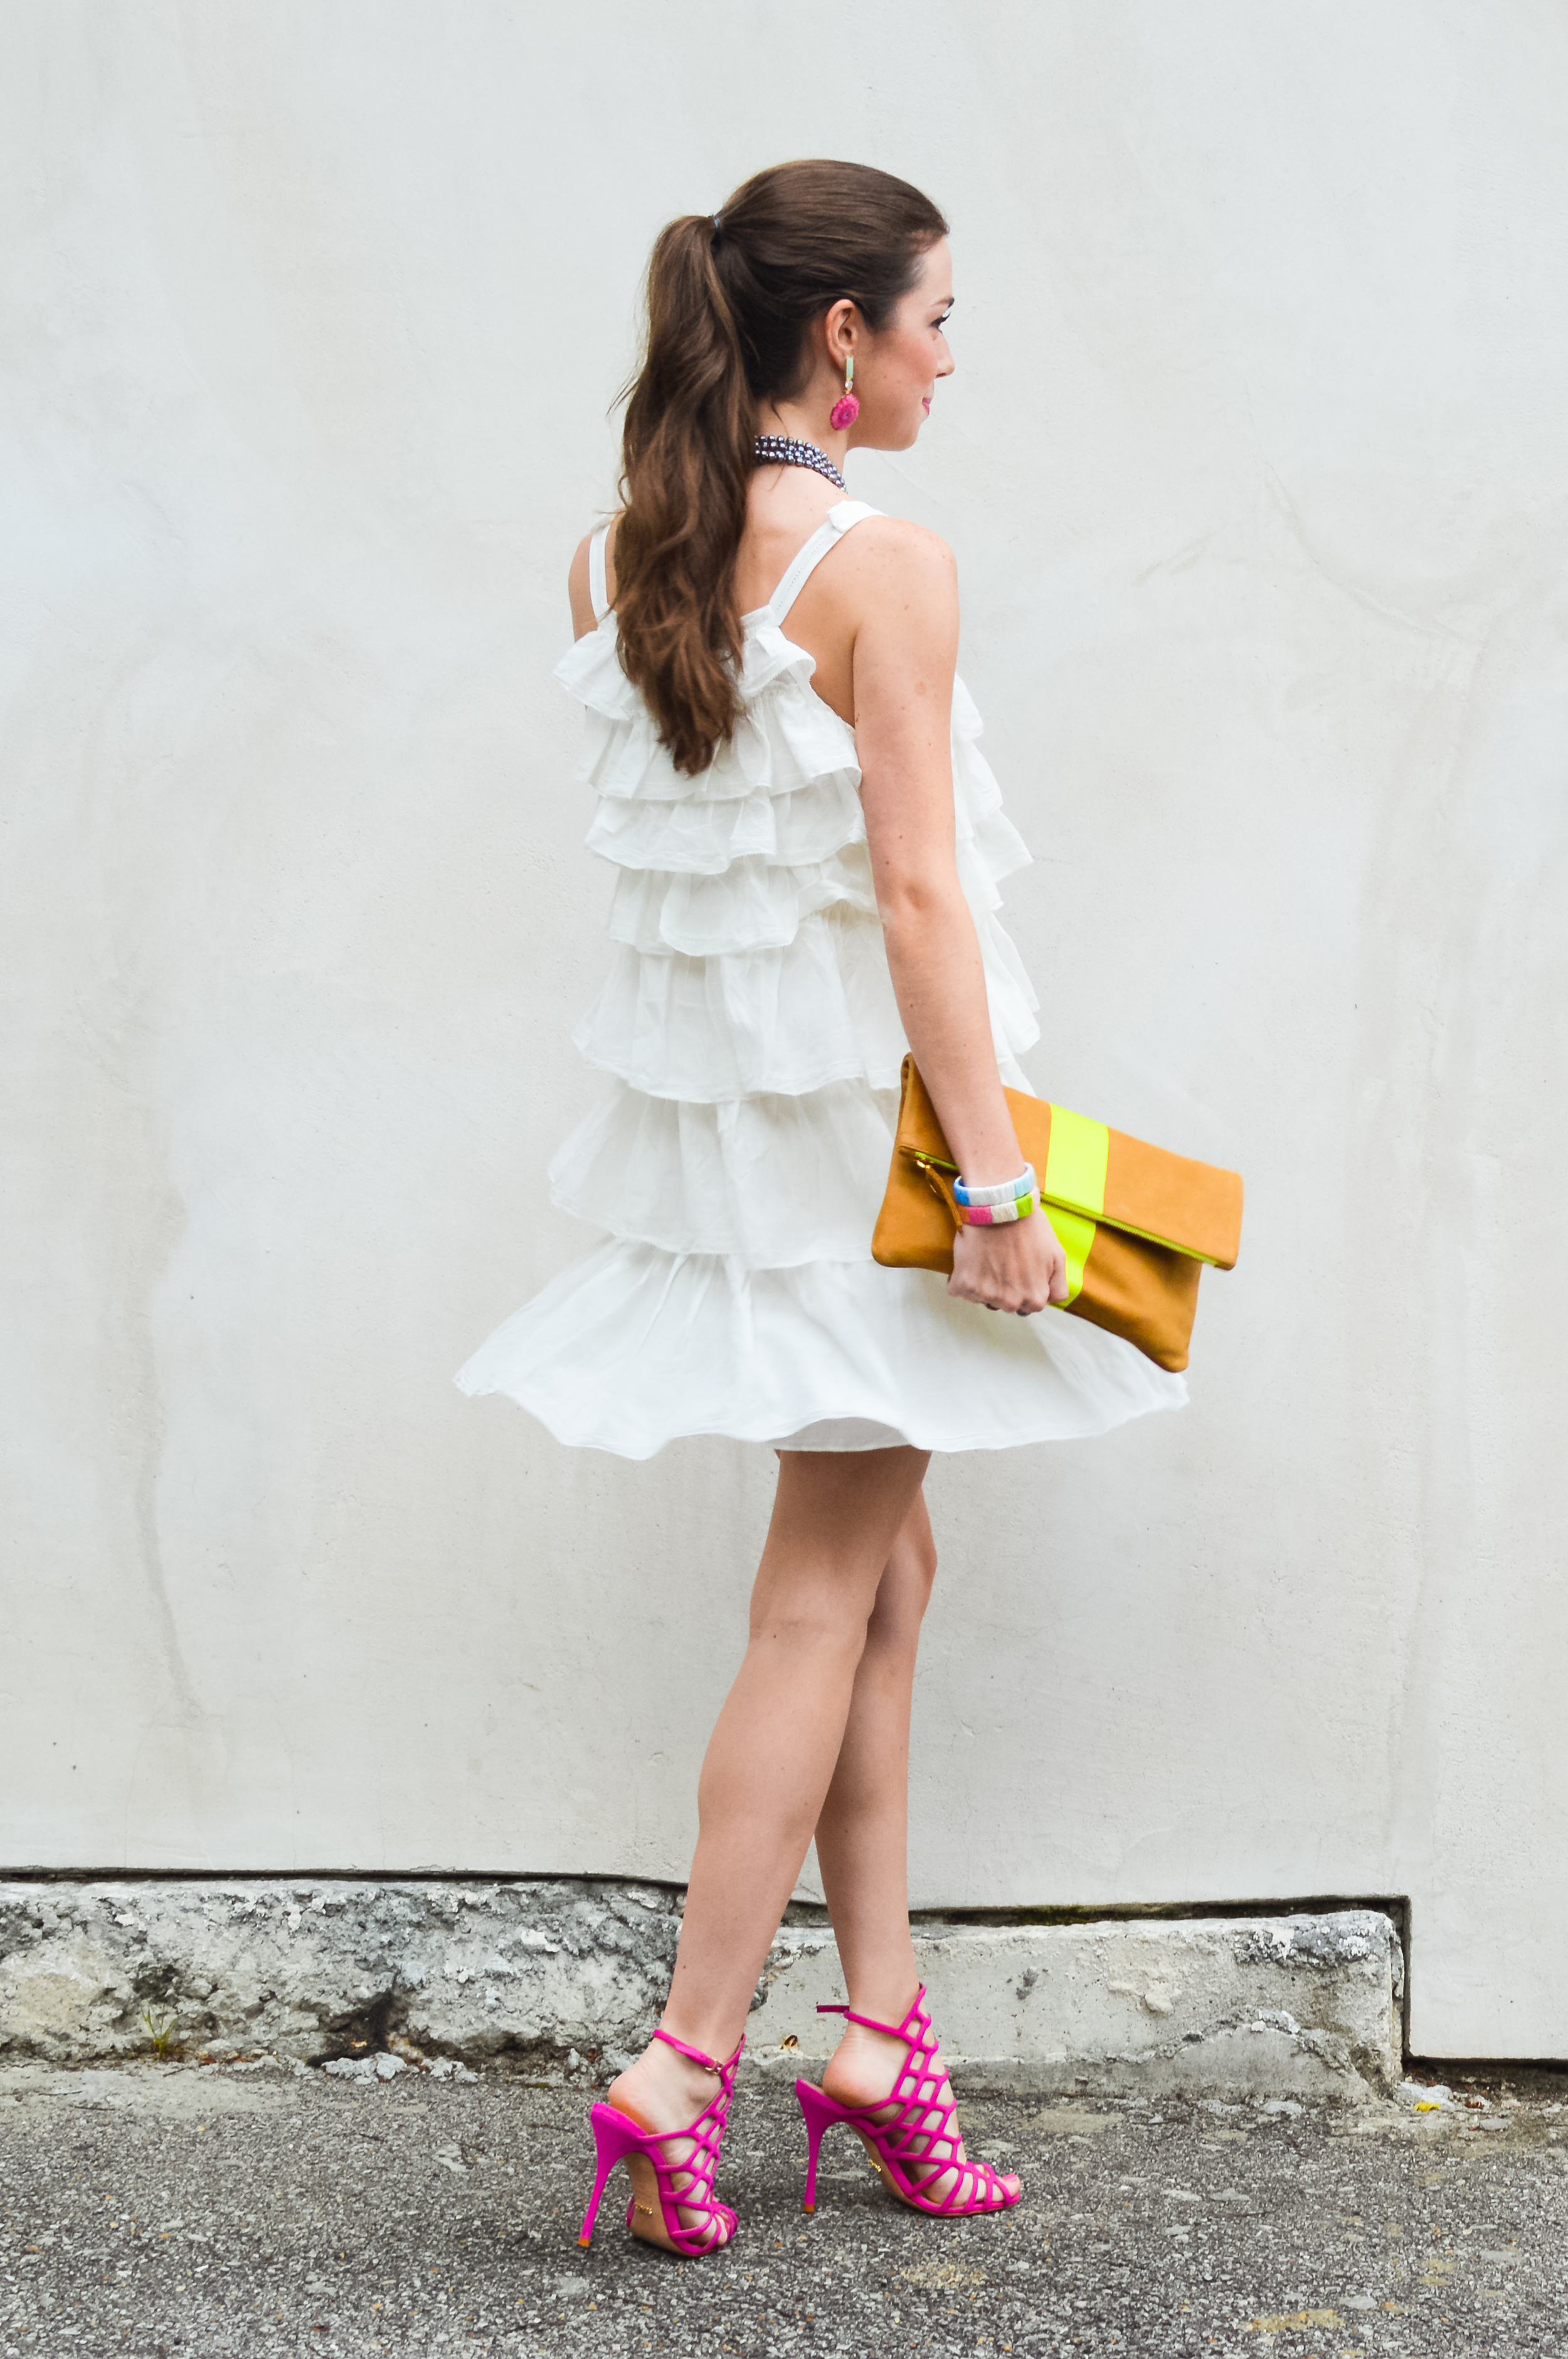 lcb_style_joie_white_dress_fashion_blogger (32 of 42).jpg